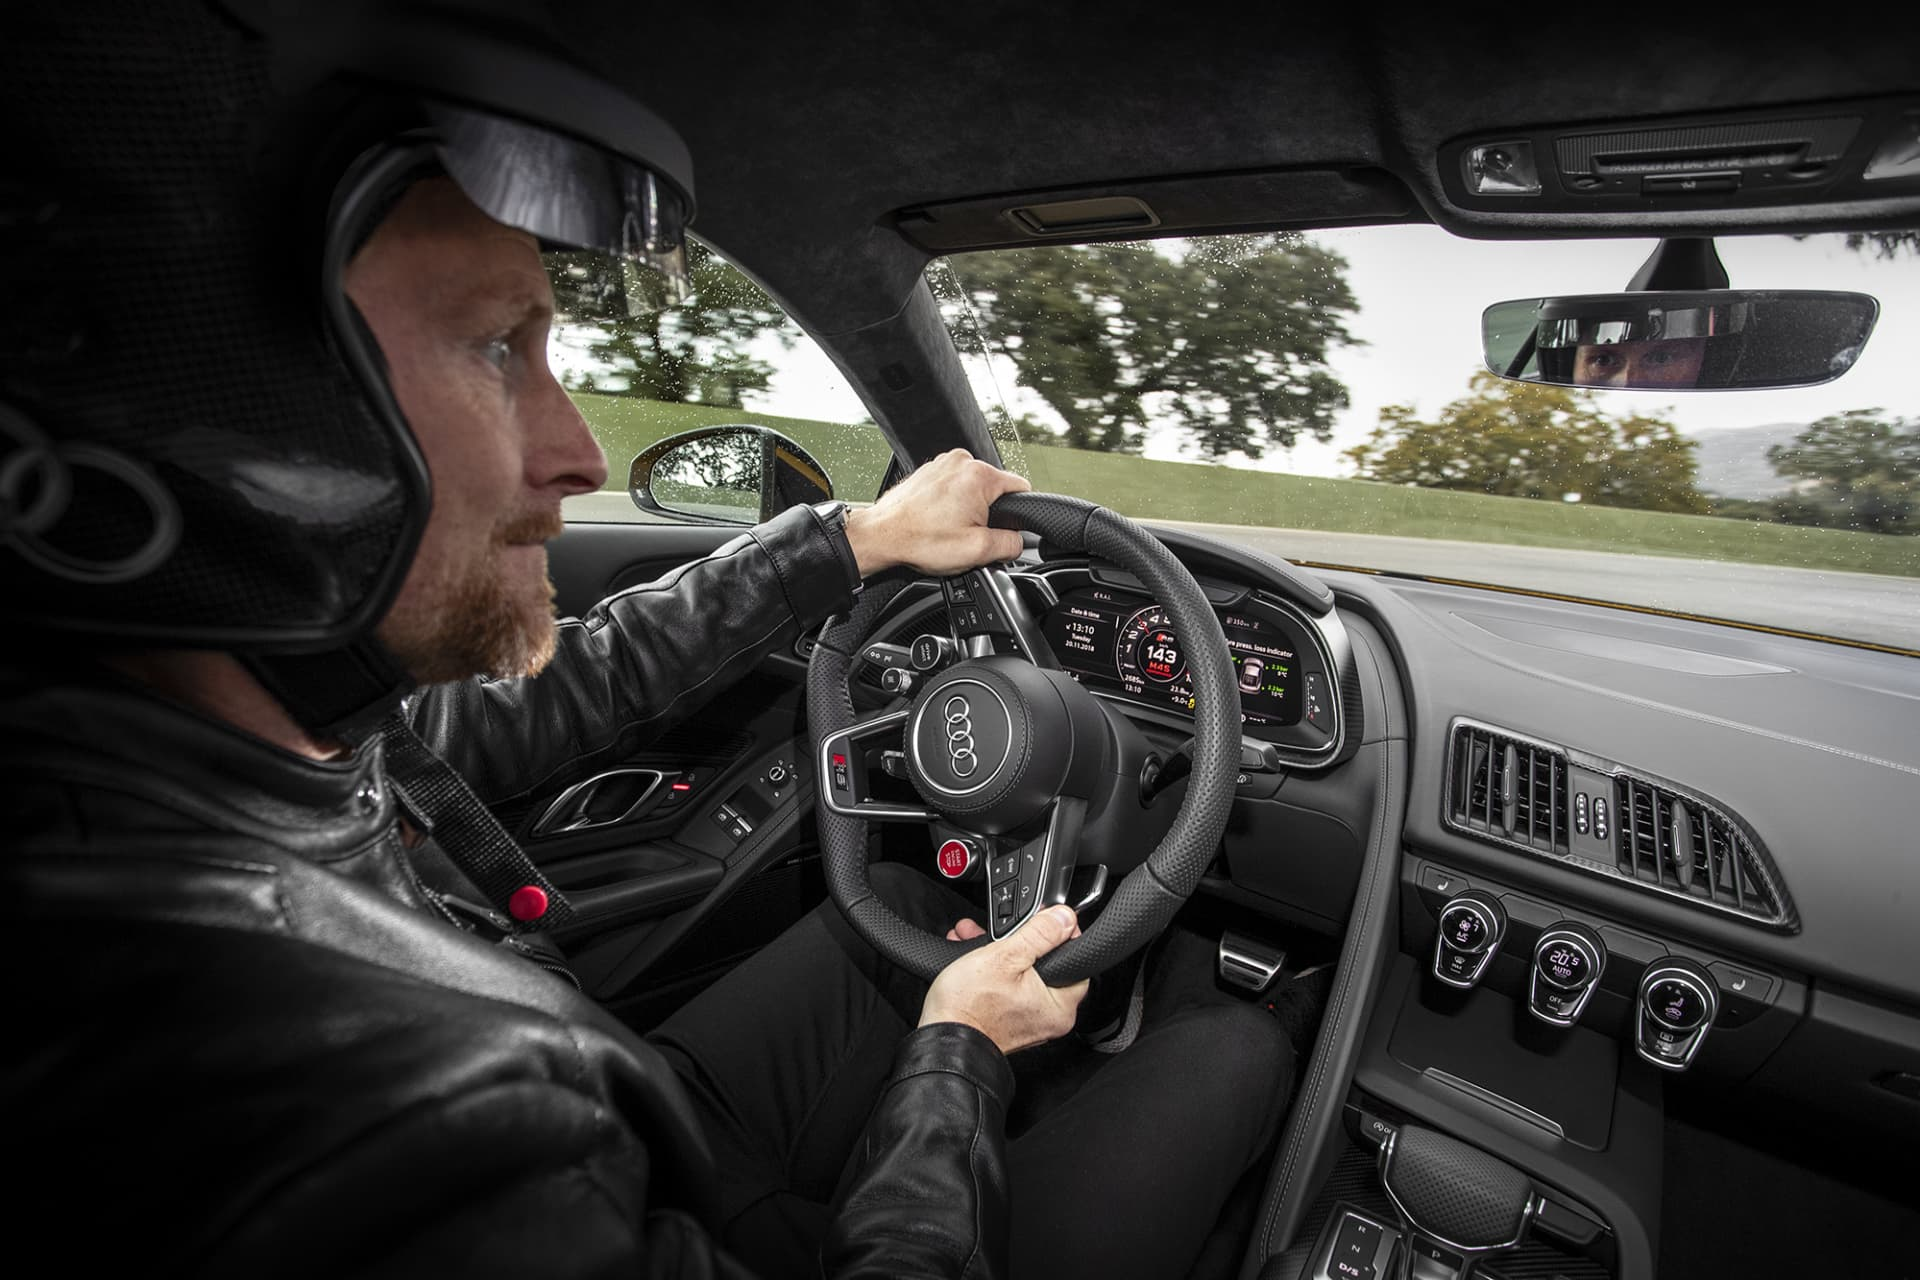 """Despite some rain the new Audi R8 feels amazingly stable in high speed turns. The four wheel drive and the weight distribution deserves some credit for this, but also the new Performance ESP system allowing you to choose """"wet"""" mode when the track is not completely dry. (photo: Ingo Barenschee)."""